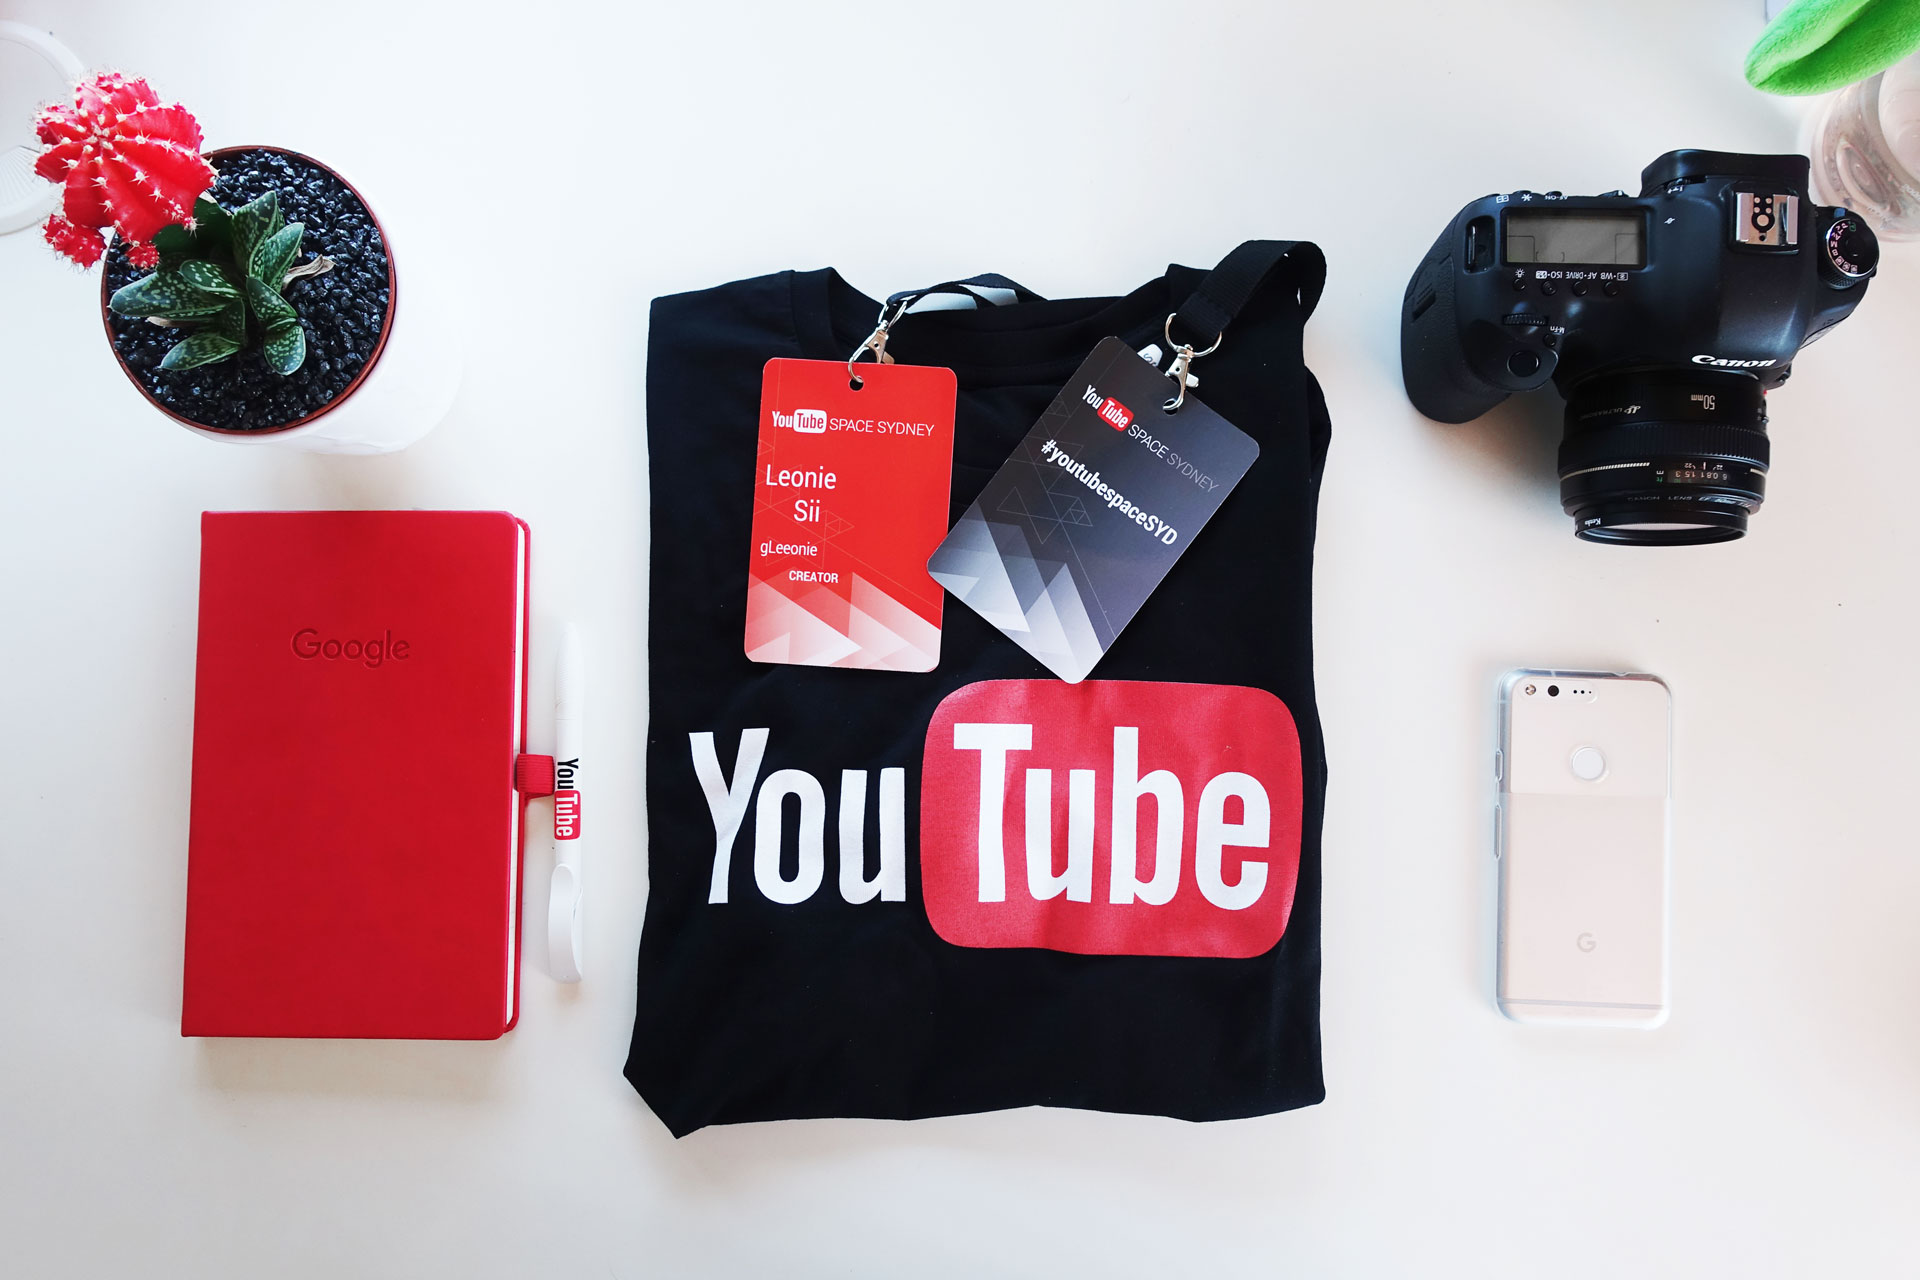 YouTube Space in Sydney